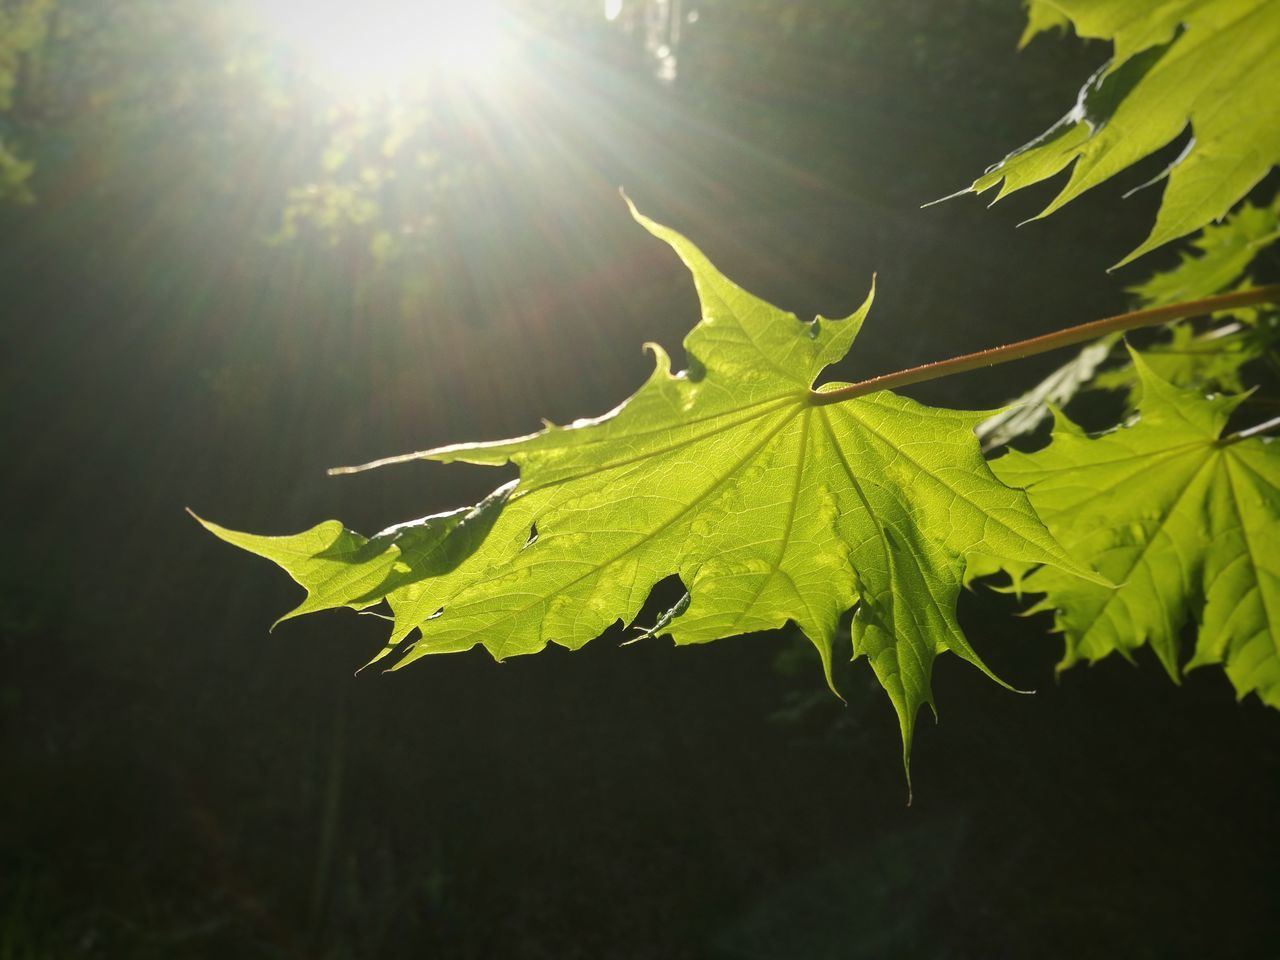 Leaf Nature Outdoors Sunlight No People Day Beauty In Nature Close-up Maple Leaf Green Color Green Leaf Green Park Summer Textured  Forest Light Up Your Life